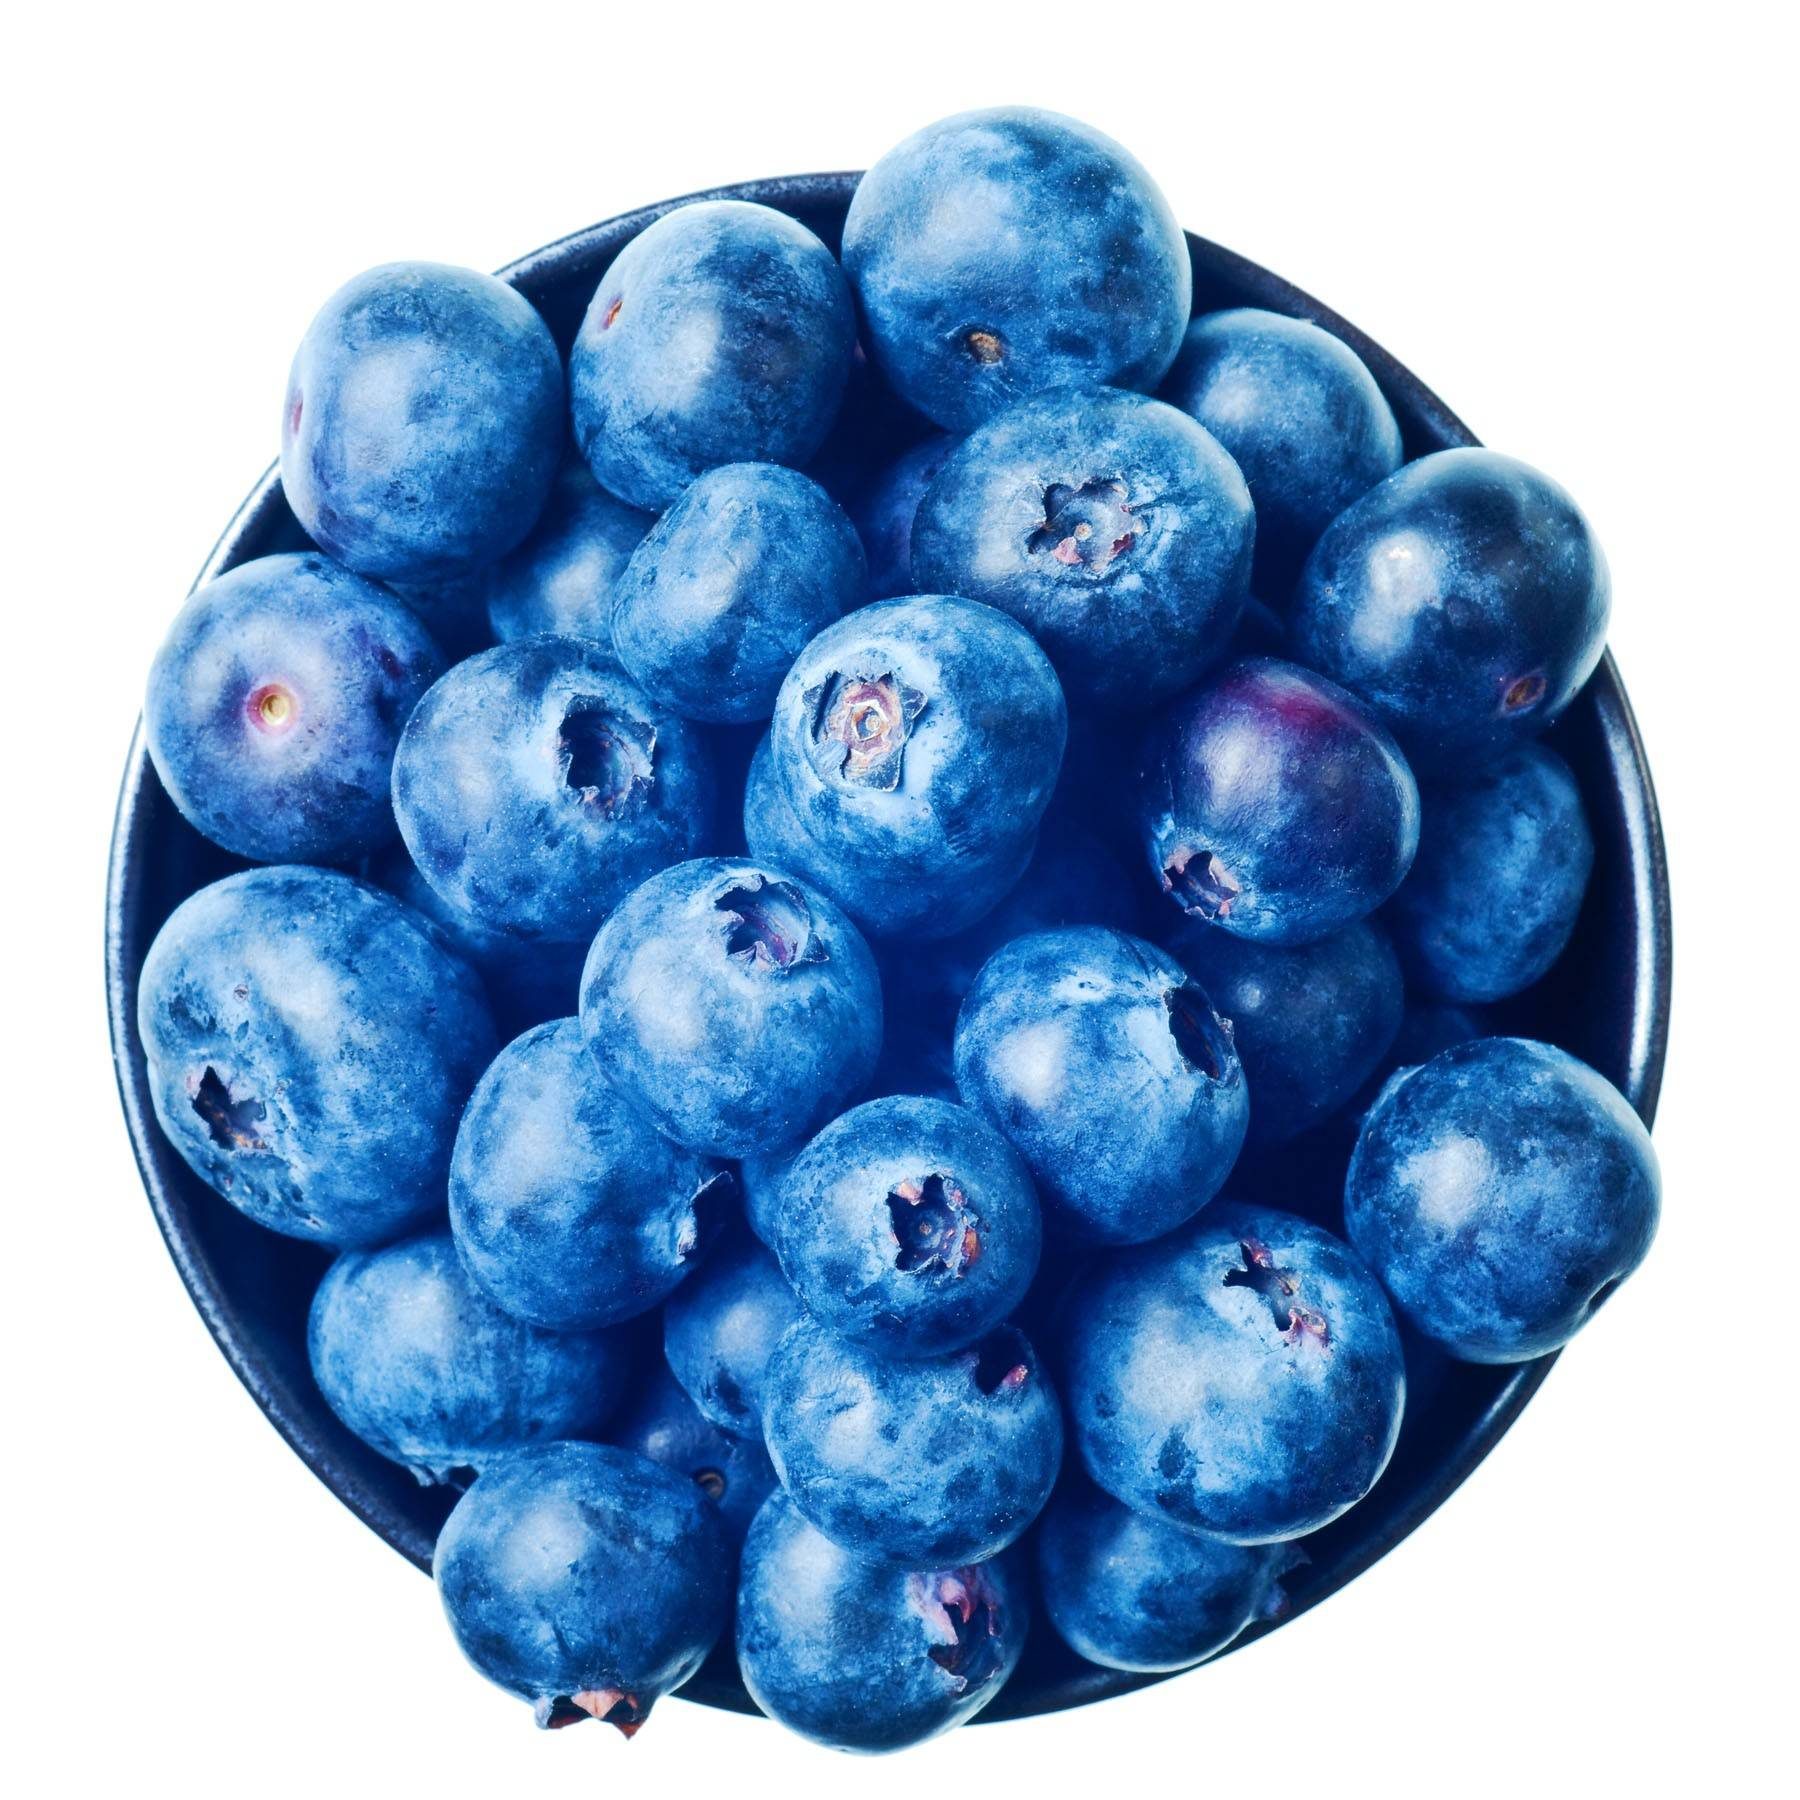 Research found that daily consumption of the equivalent of one cup of fresh blueberries, showed positive changes in cognitive function in older adults.